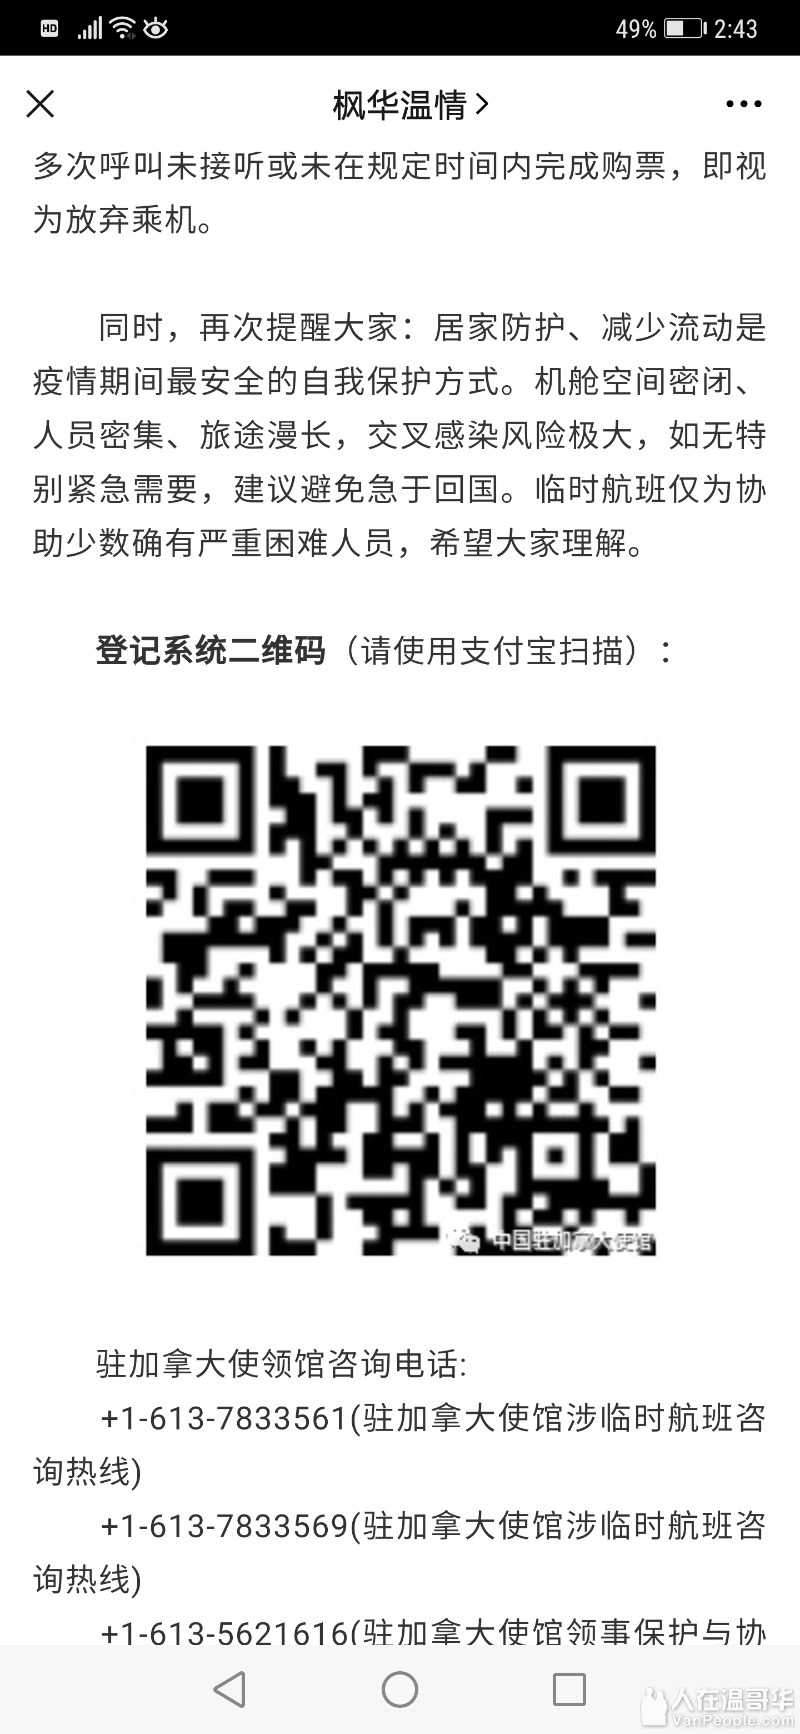 Screenshot_20200629_144342_com.tencent.mm.jpg